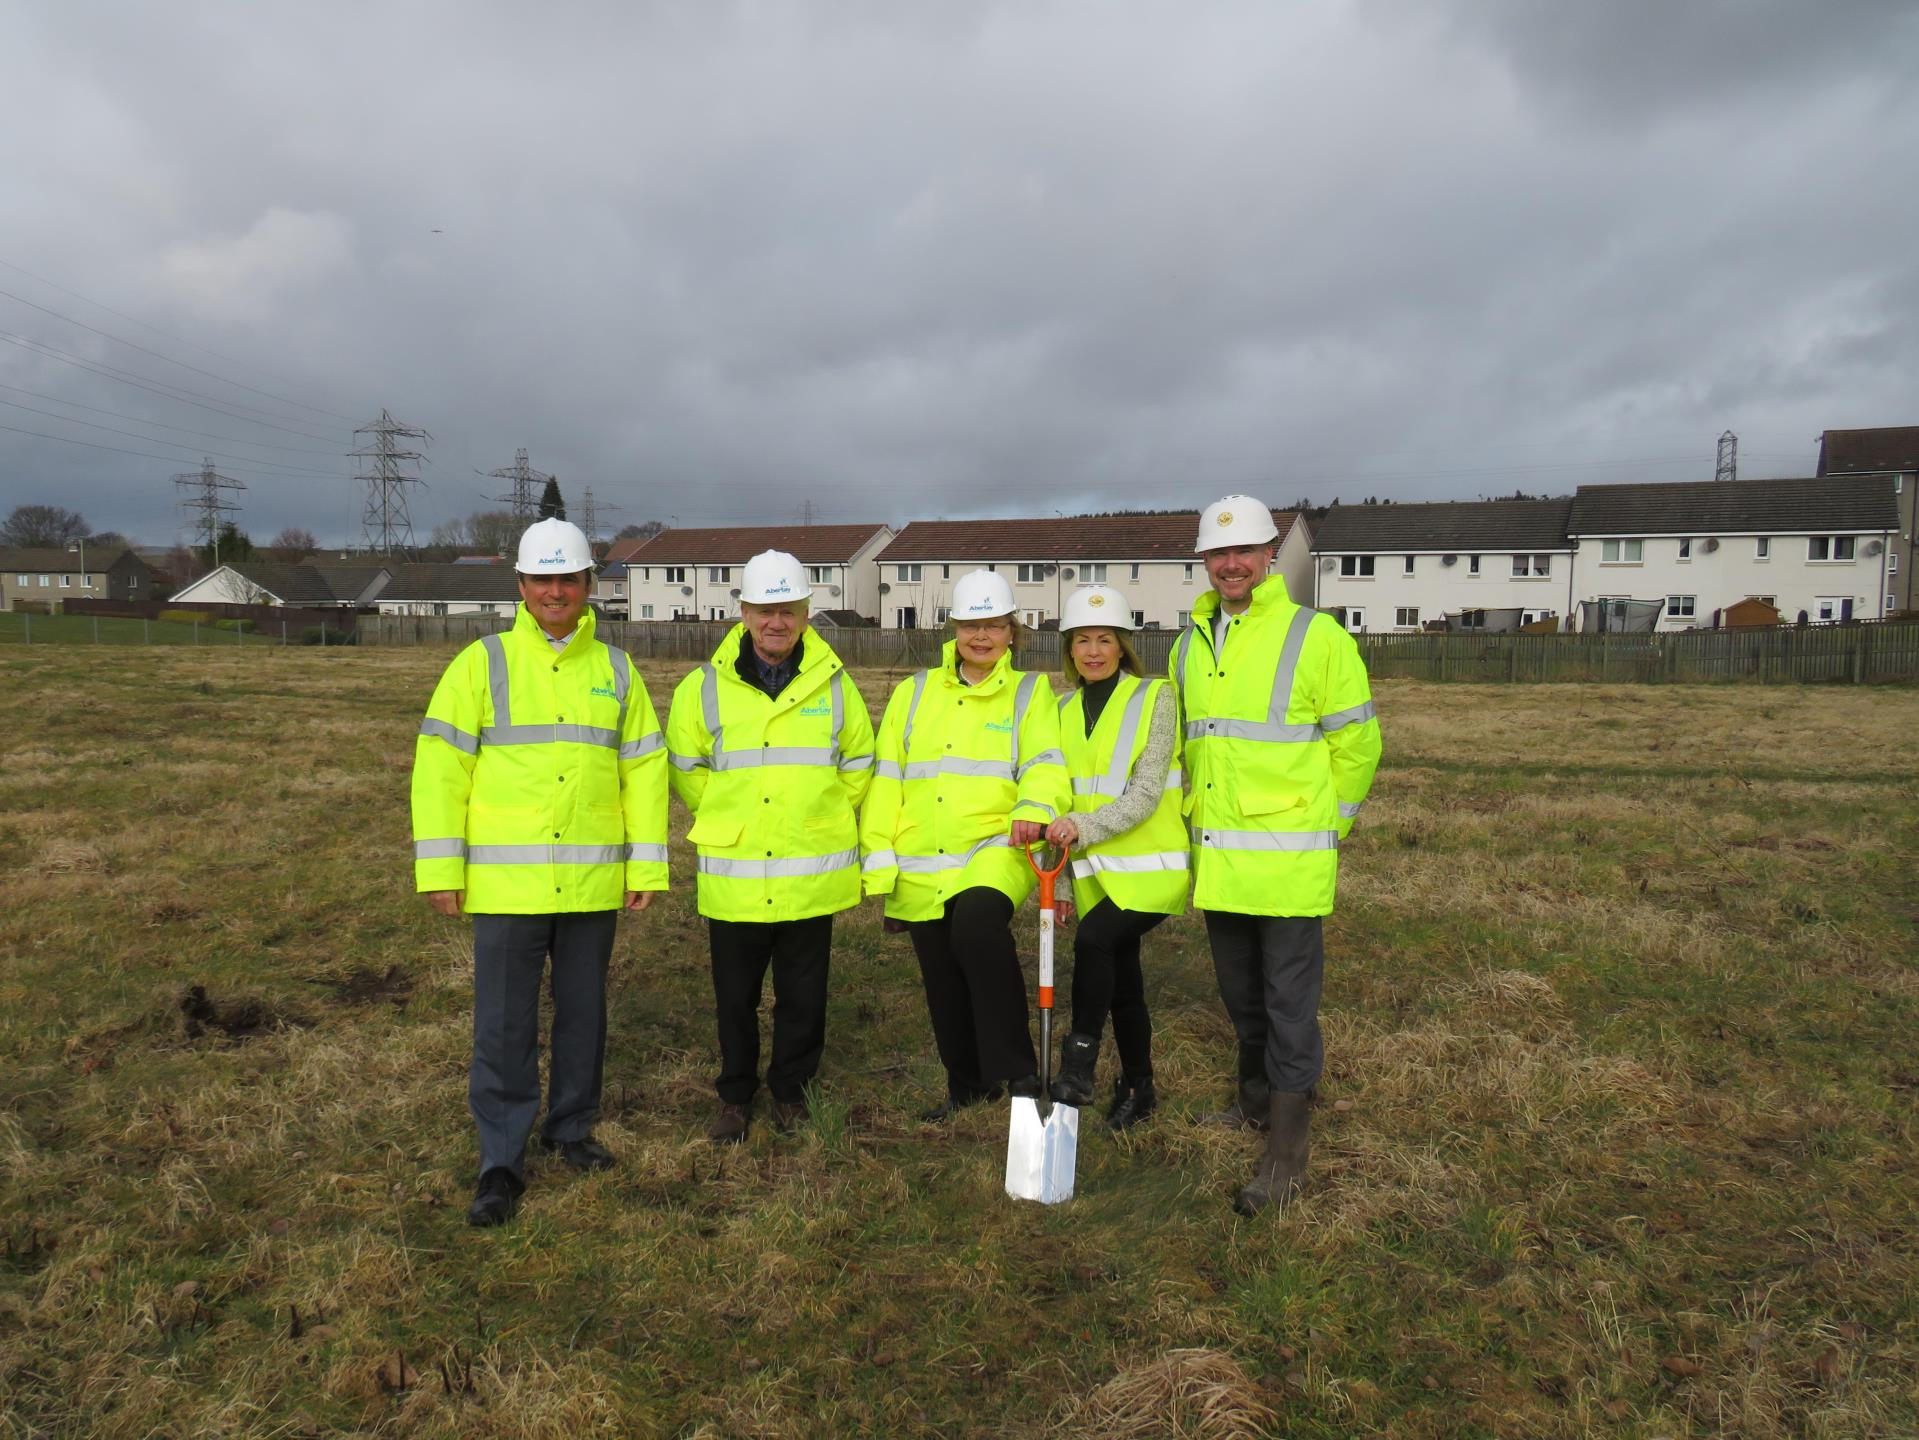 From left: Barry Moore, chief executive of Abertay Housing Association, Ron Neave, vice chairman of AHA, Kath Mands, chairwoman of AHA, Dawn Kane, Business Development Manager and Bid Co-ordinator for Bancon Construction (BC) and Gavin Currie, Managing Director of BC.